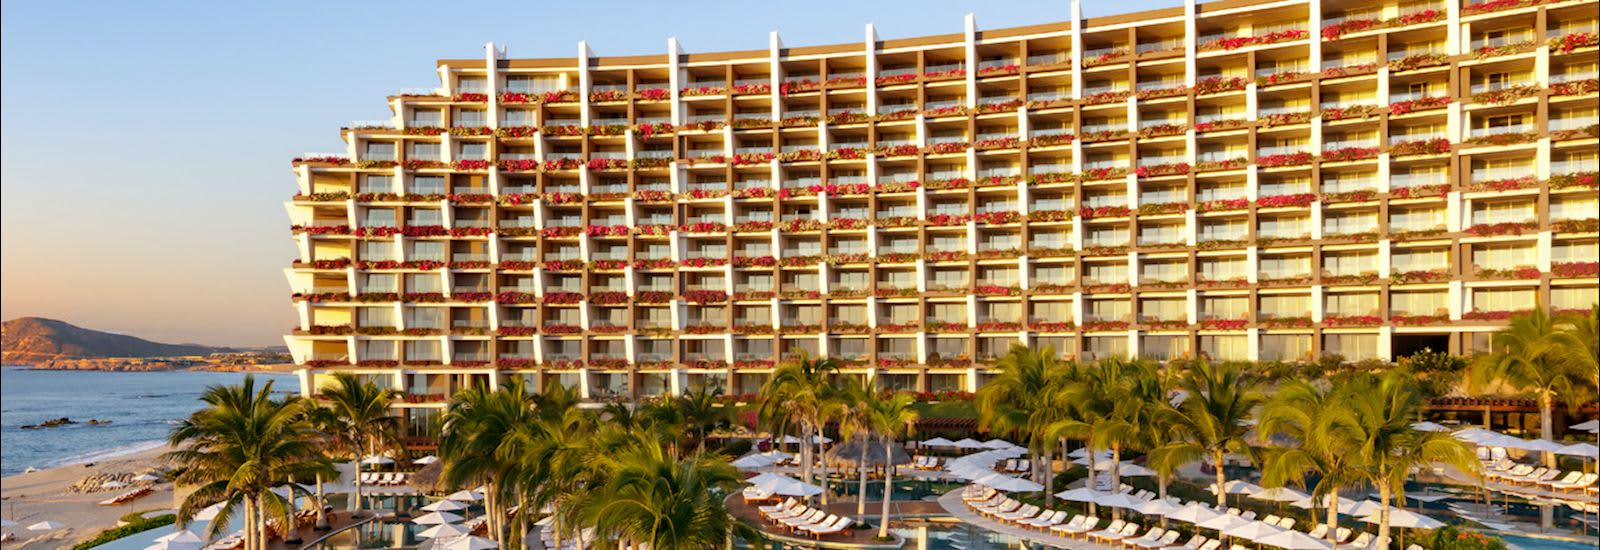 Location of Grand Velas Los Cabos Resort, Mexico